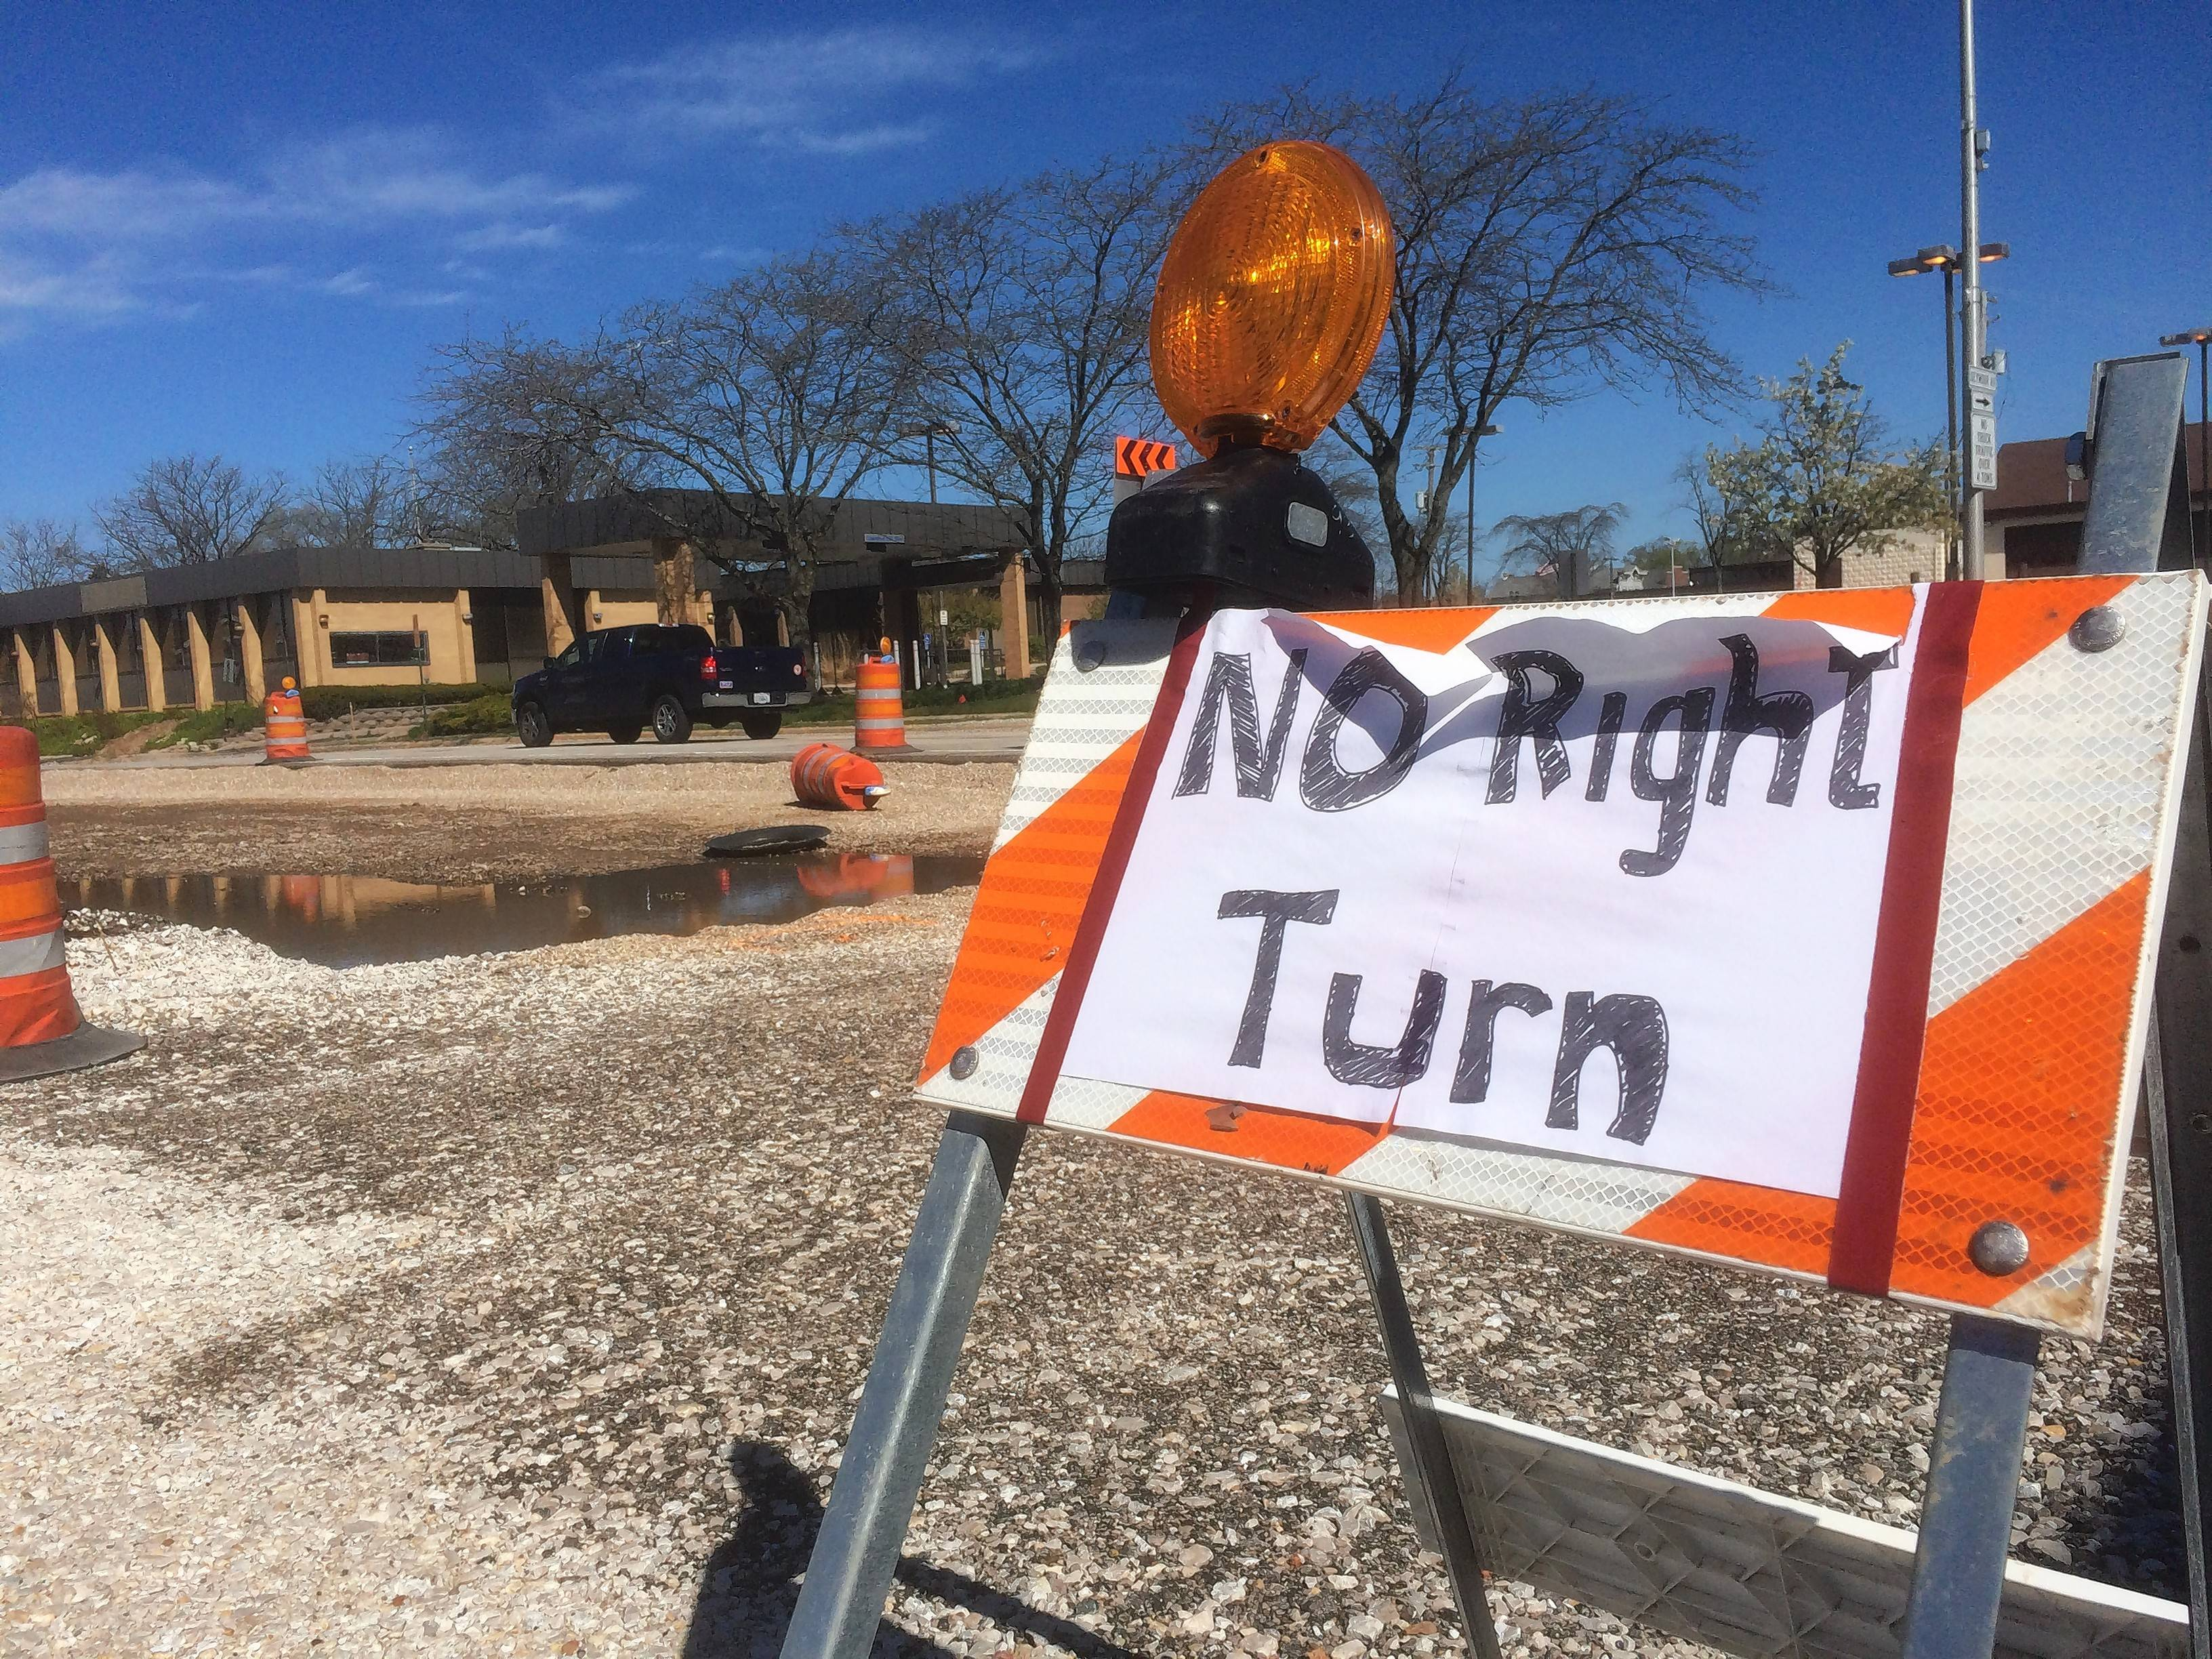 Editorial: Protecting businesses should be part of road work planning